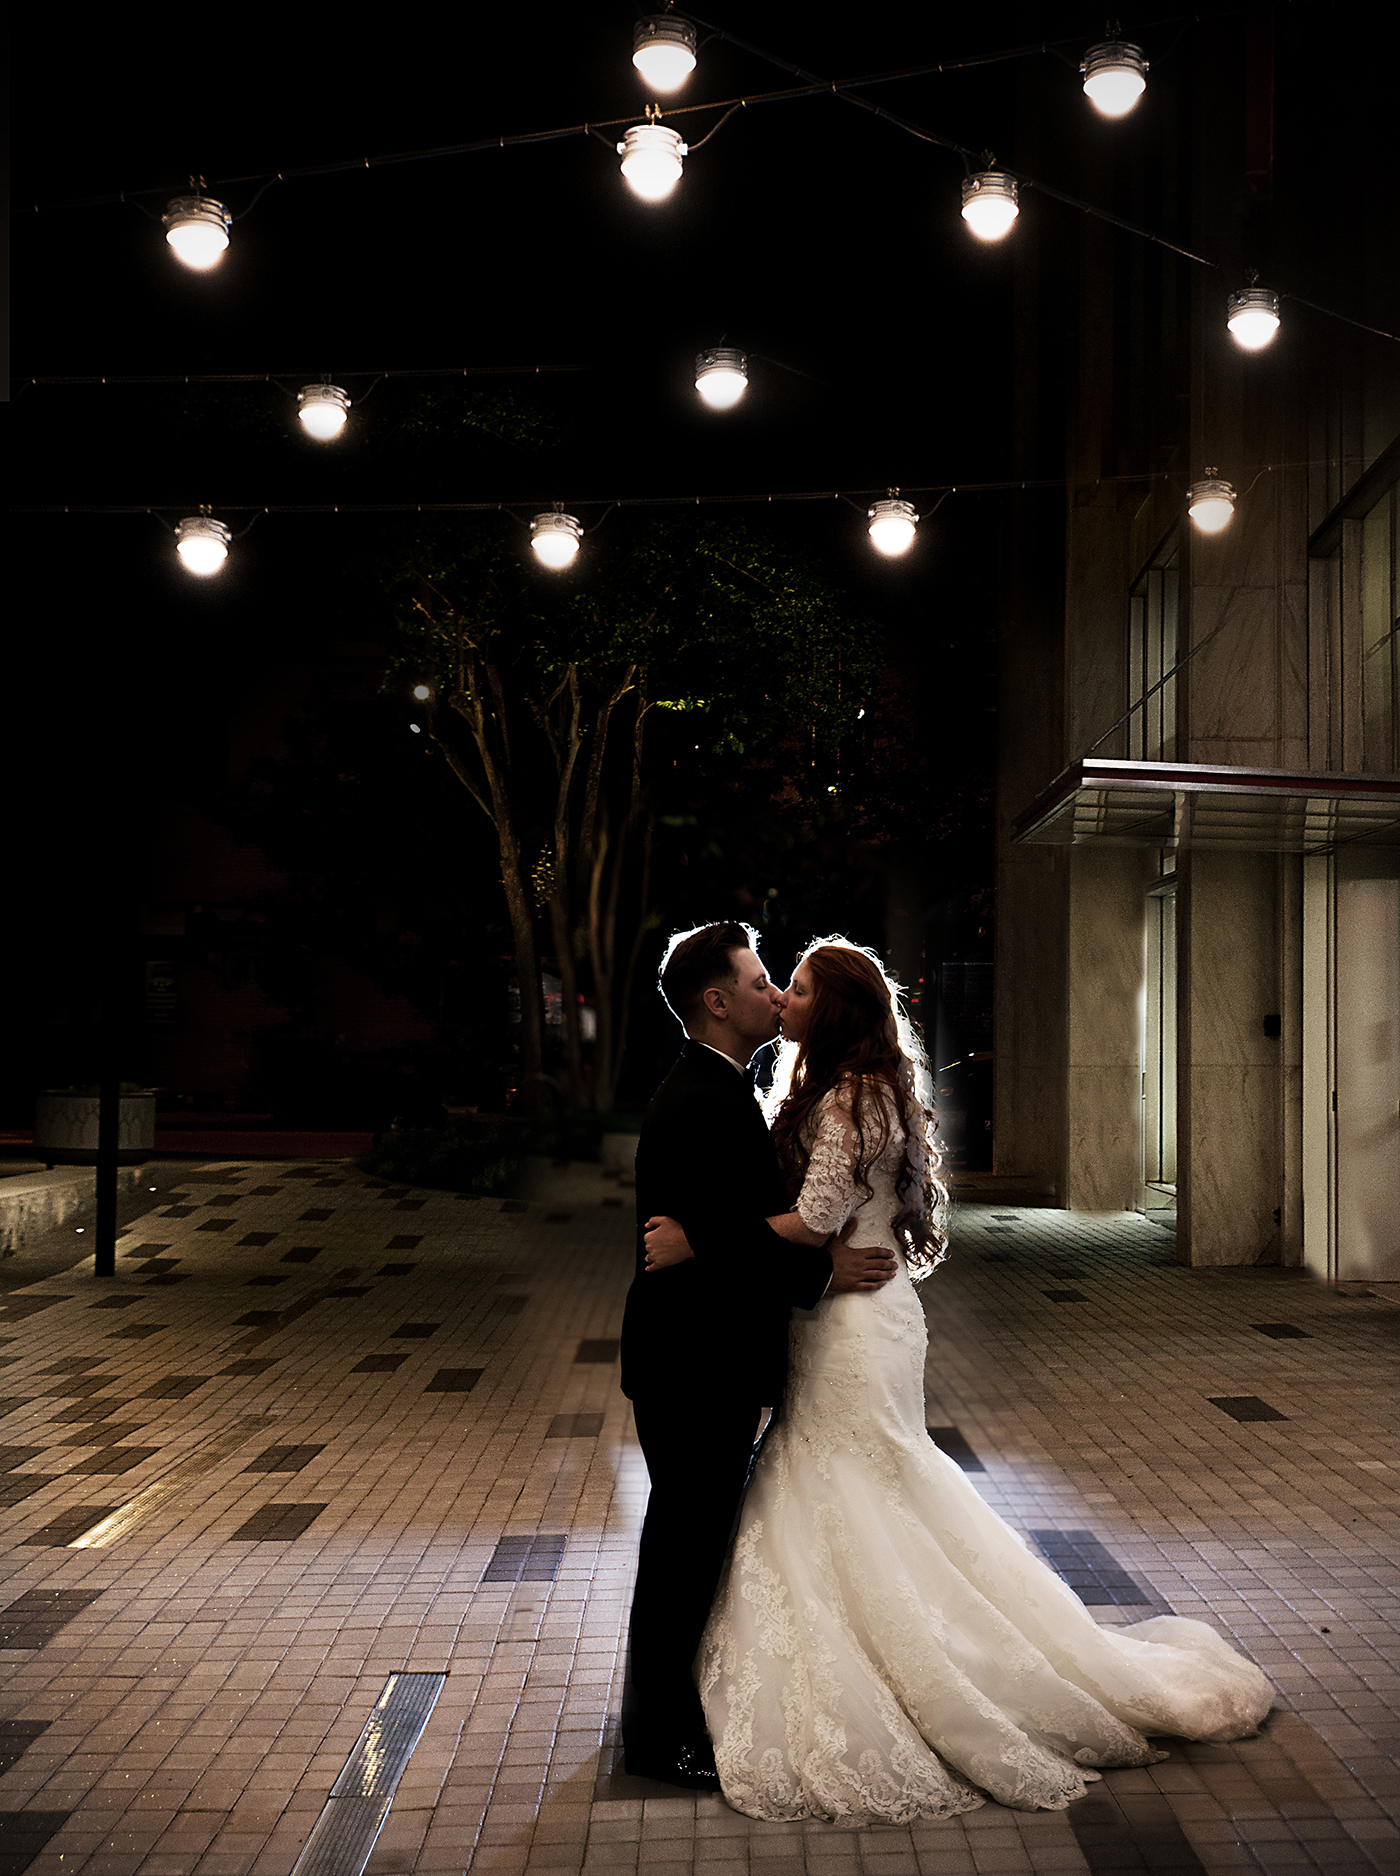 A bride and groom kiss at a wedding at the Stockroom in downtown Raleigh, NC